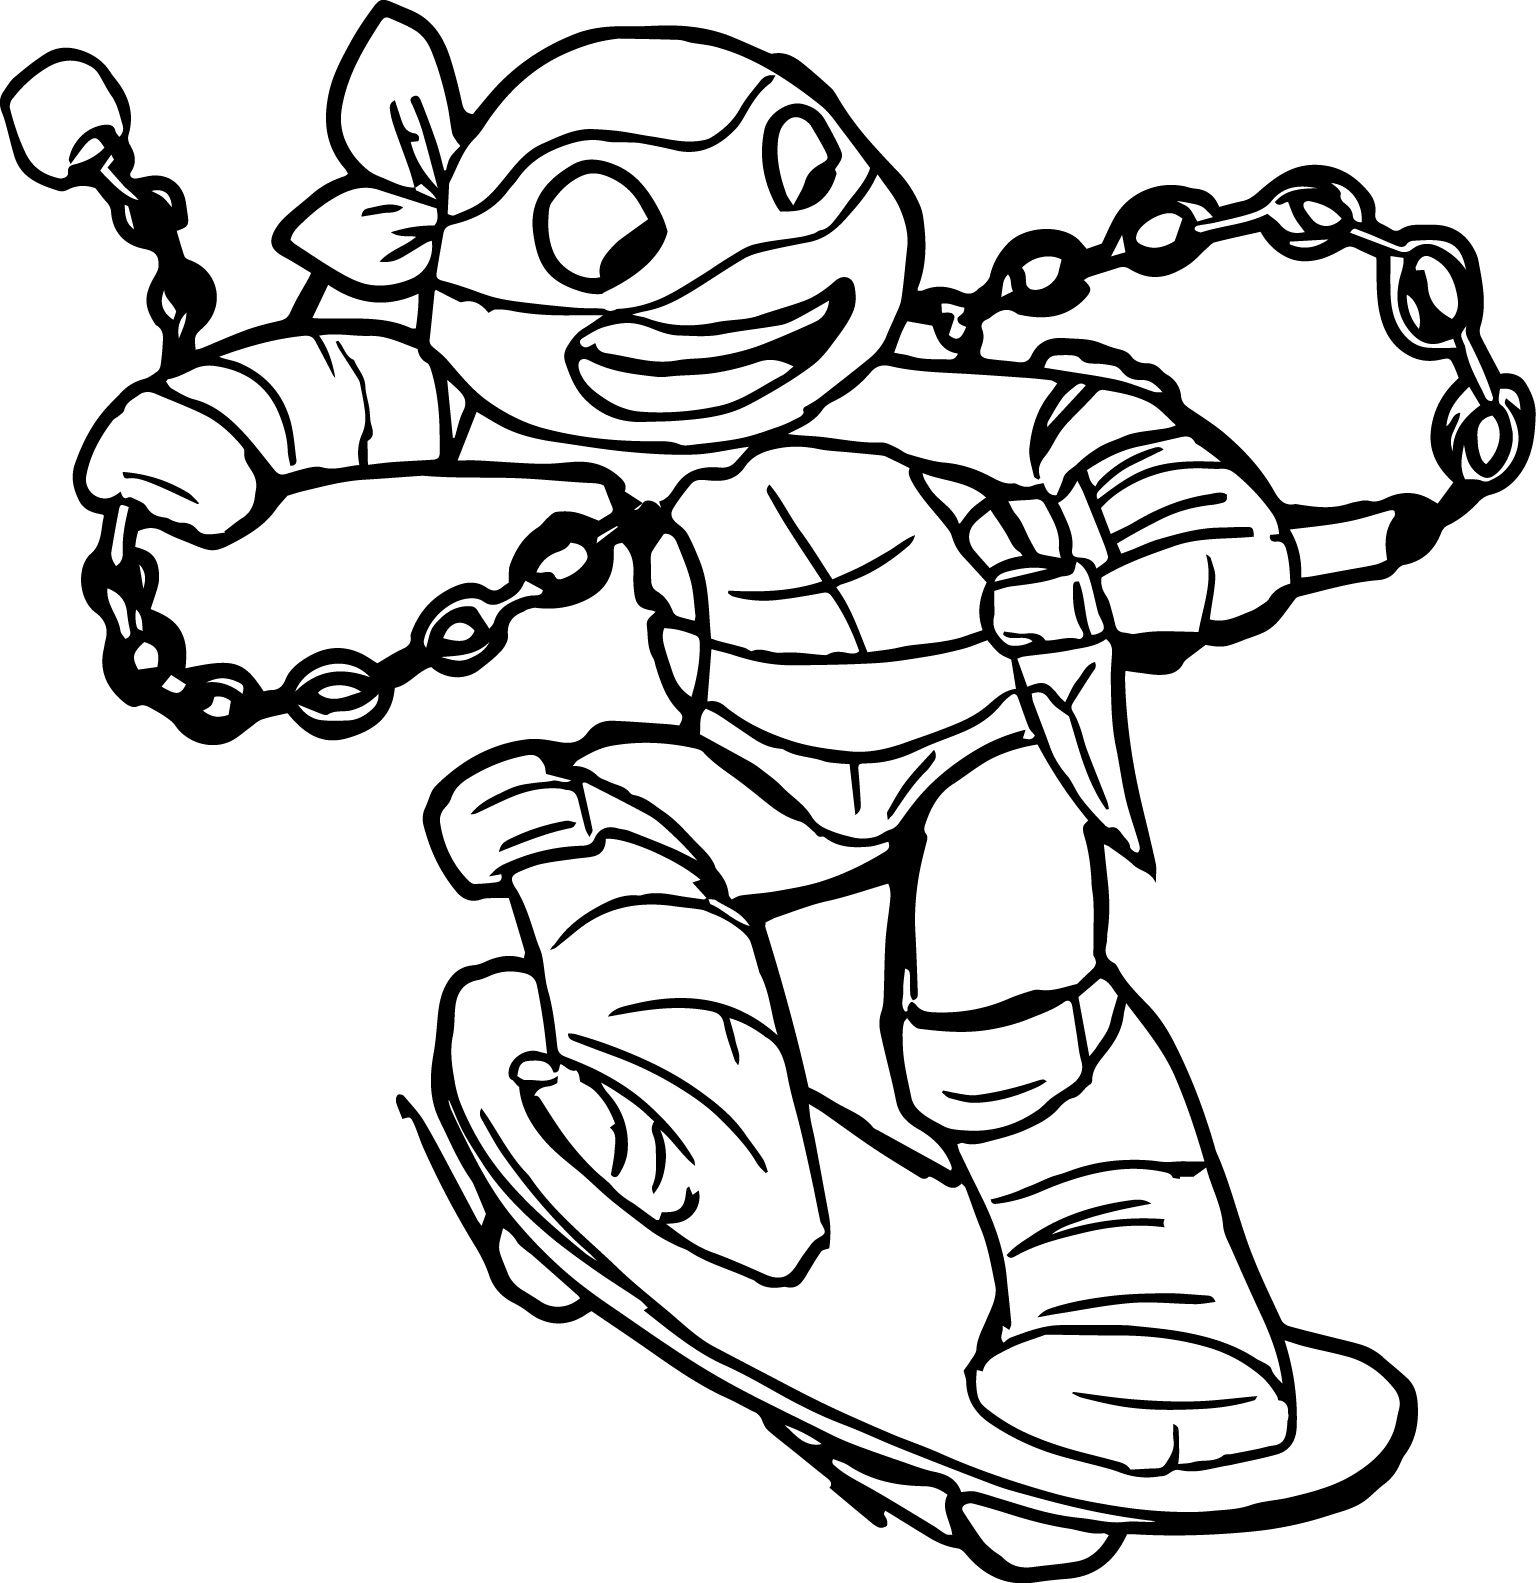 ninja-turtle-going-on-skater-coloring-page.jpg (1536×1583) | sofii ... - Ninja Turtle Pizza Coloring Pages